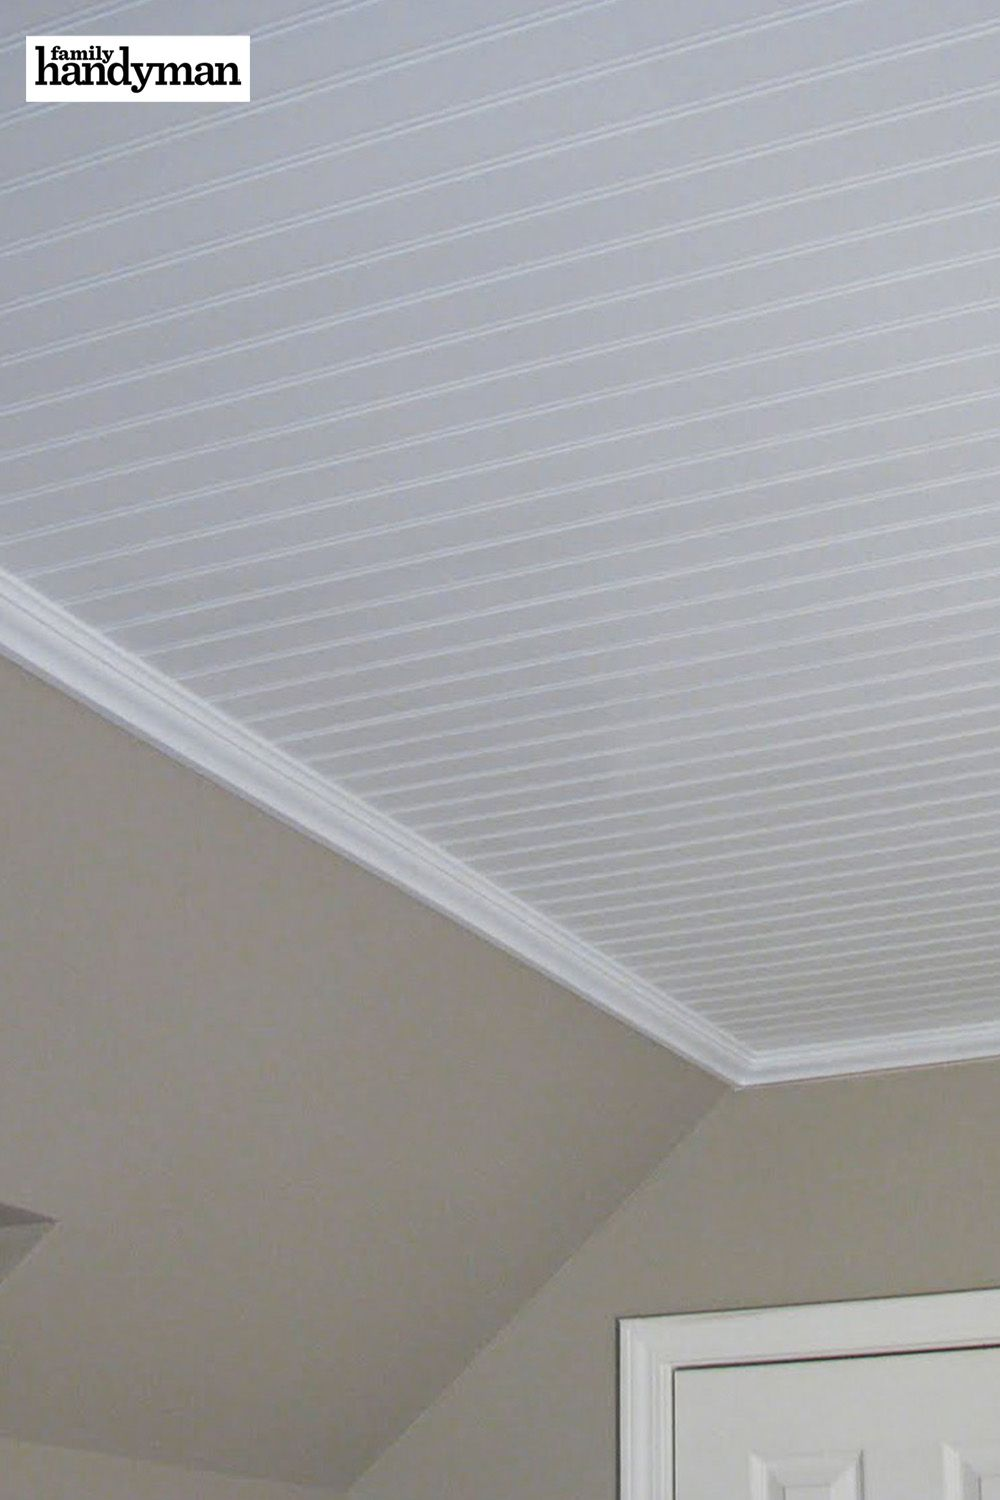 14 Ways to Cover a Hideous Ceiling